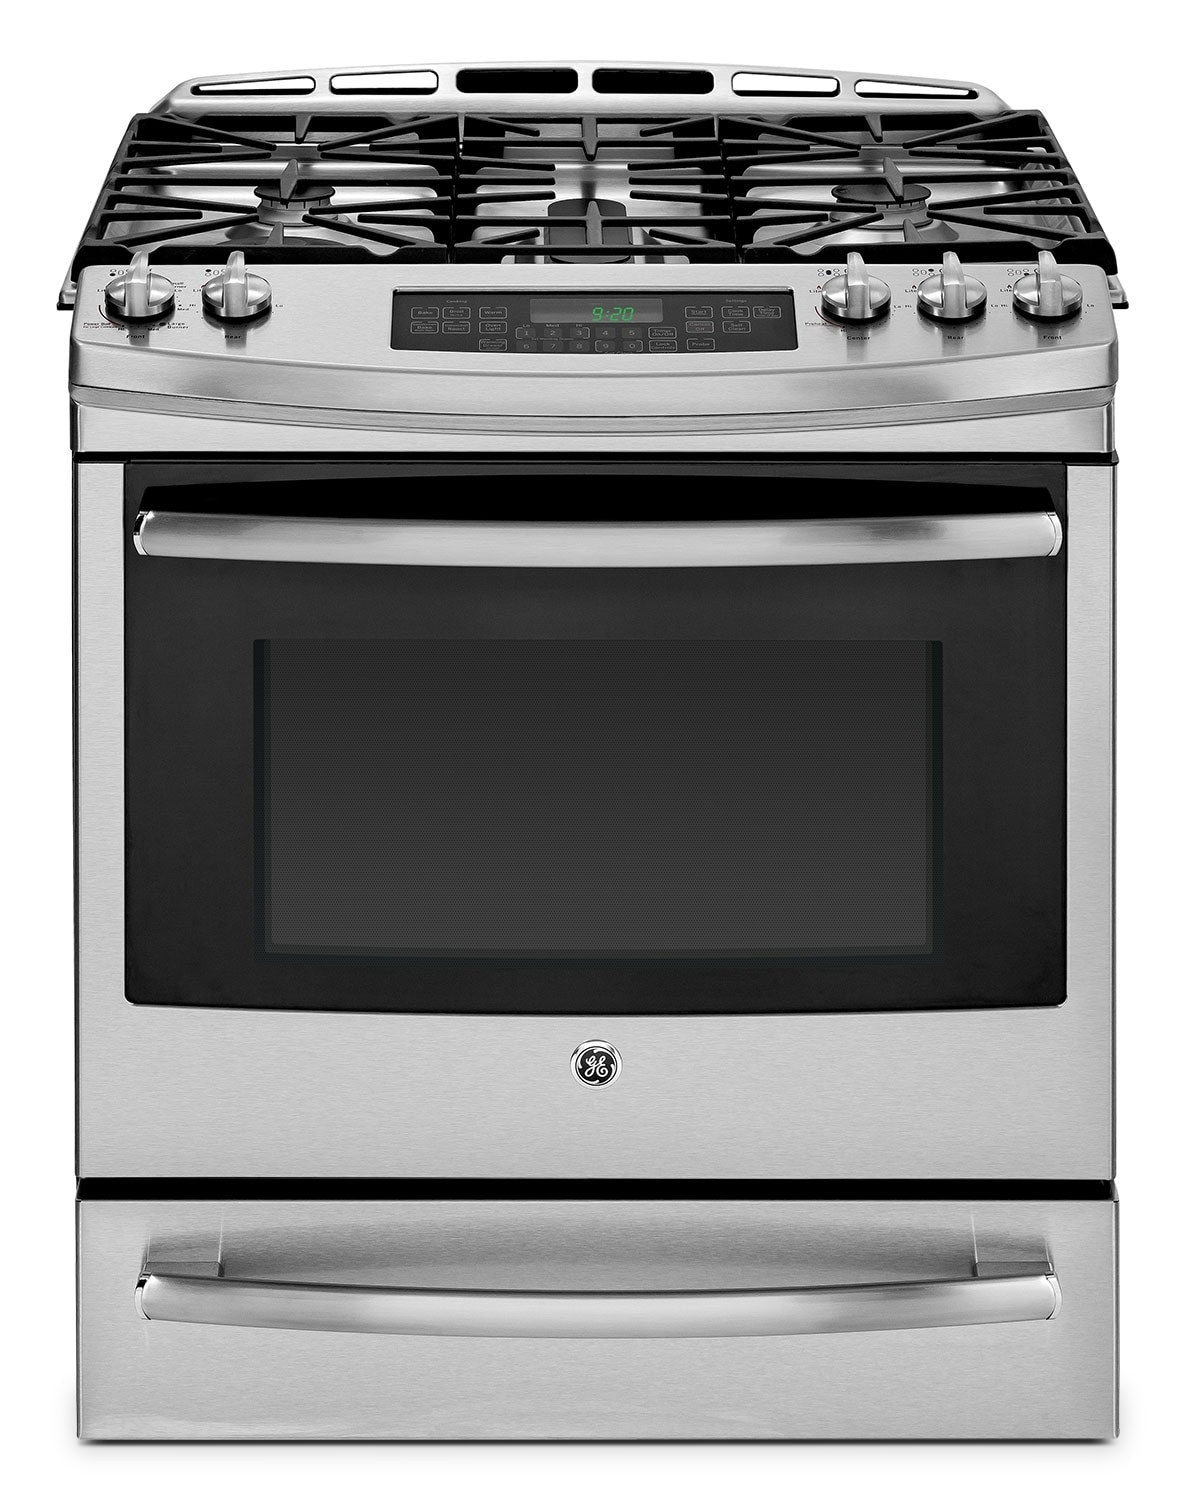 Cooking Products - GE Stainless Steel Slide-In Gas Convection Range (5.4 Cu. Ft.) - PCGS920SEFSS